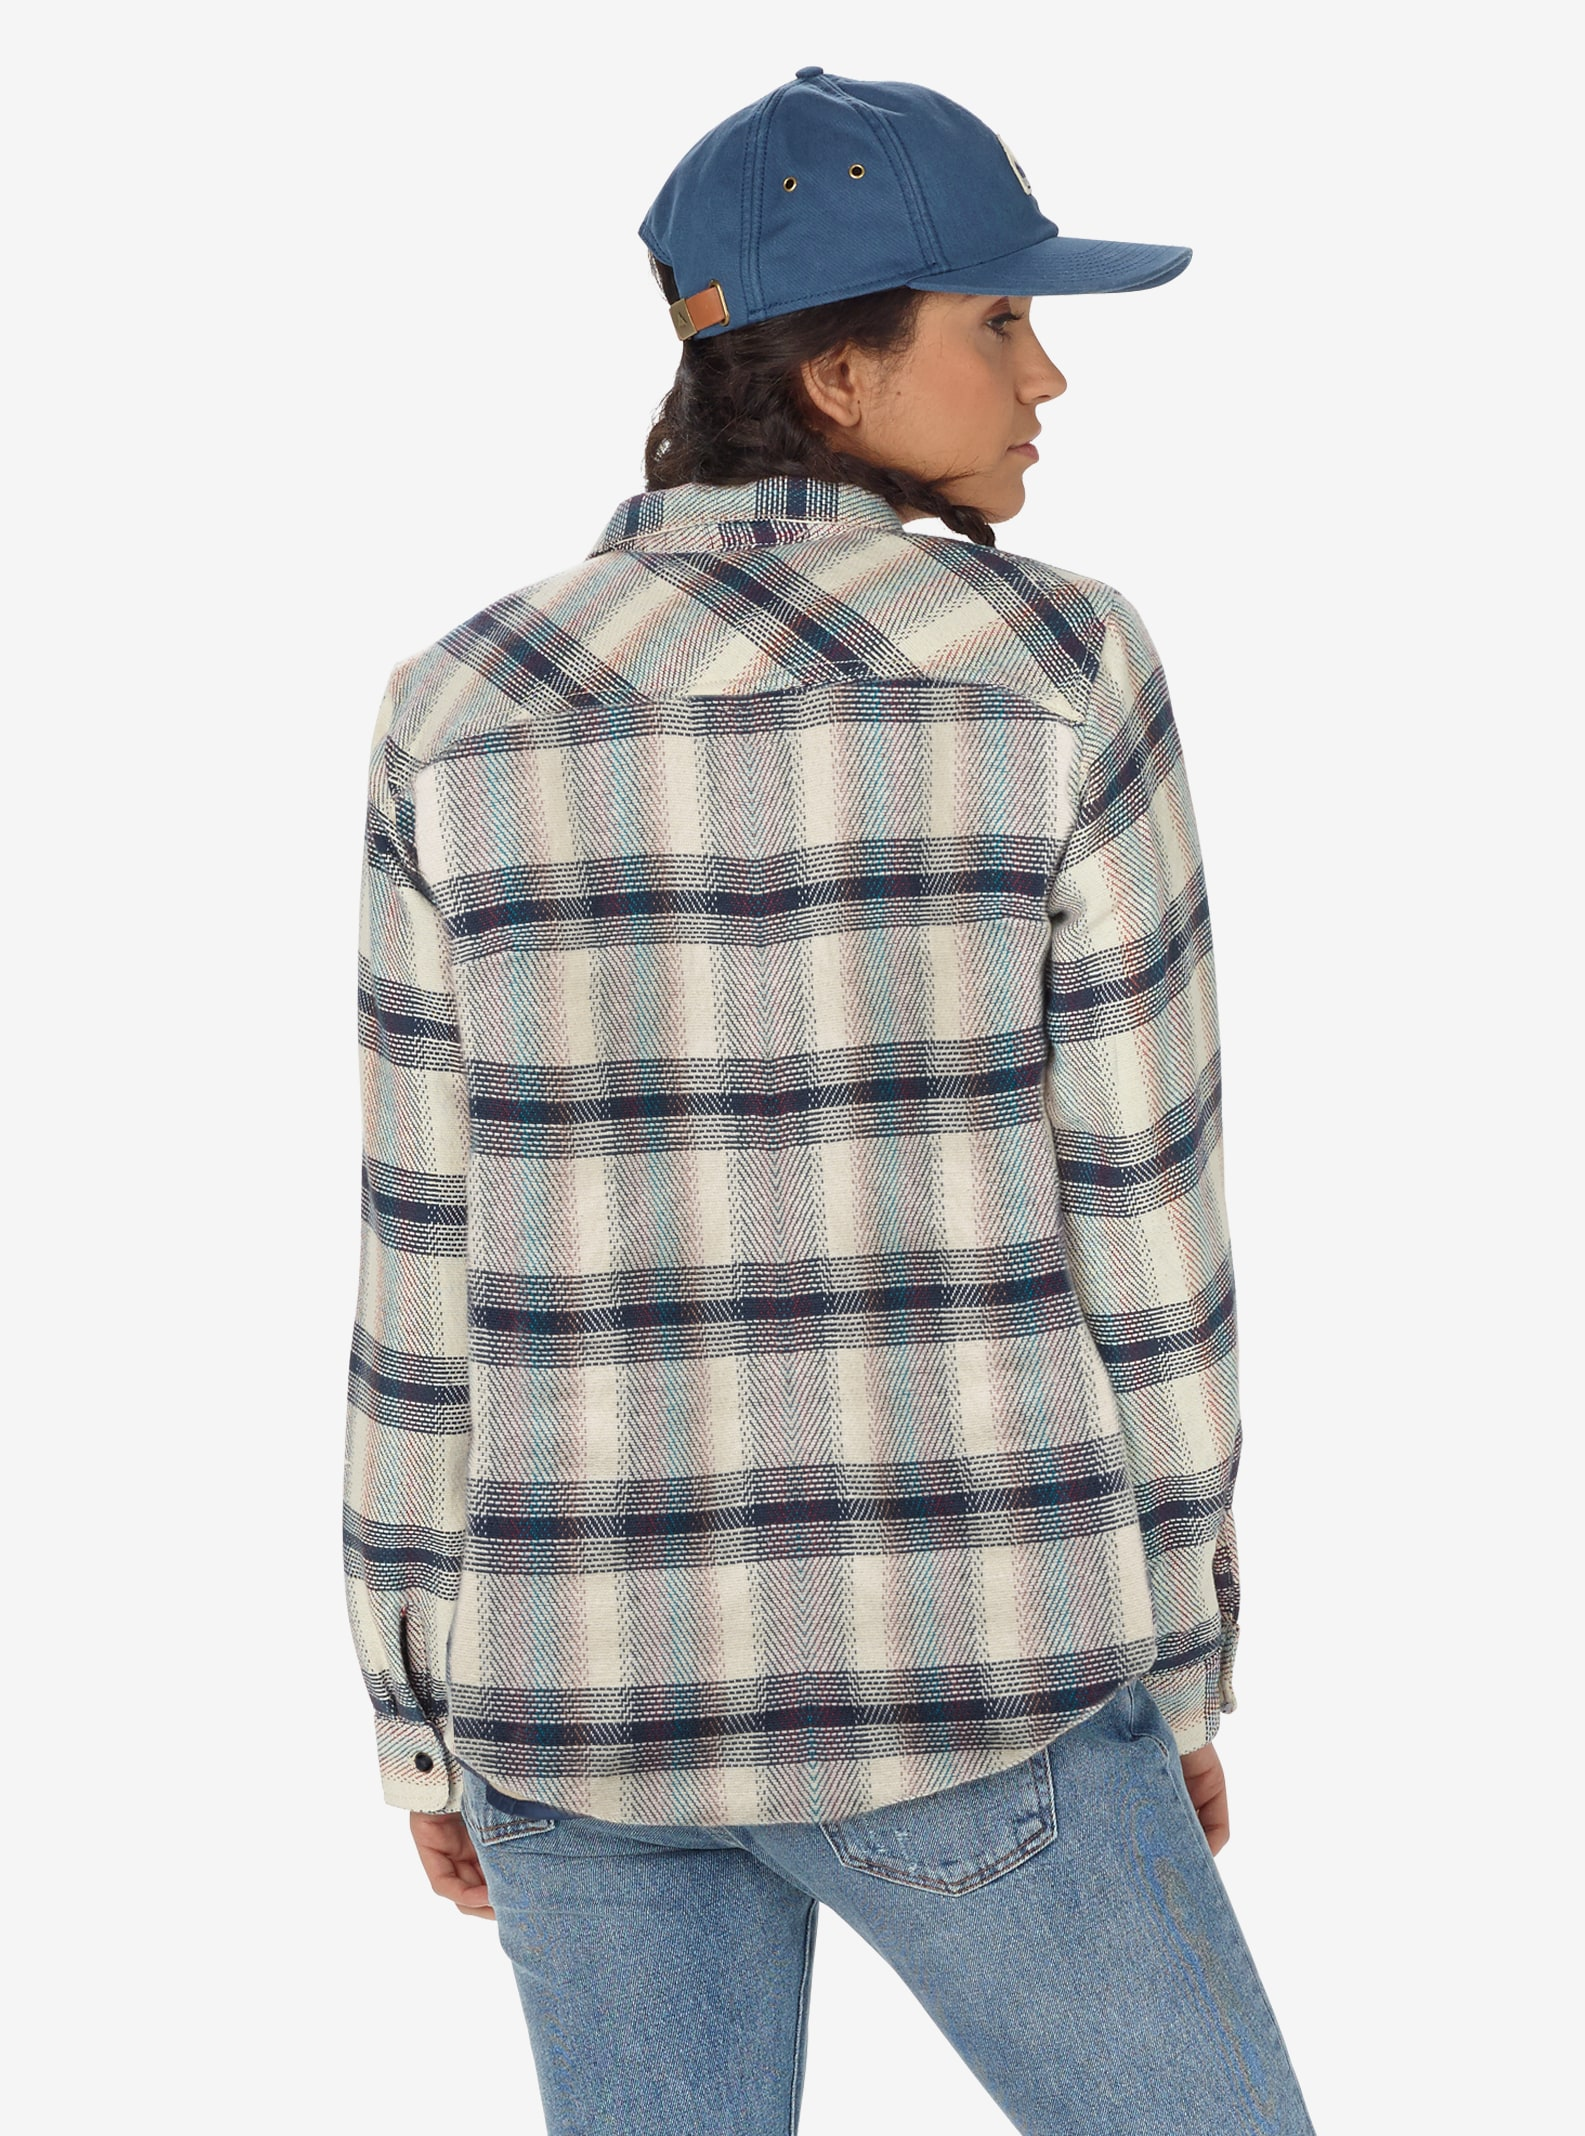 Women's Burton Grace Sherpa Flannel shown in Canvas Gradient Plaid